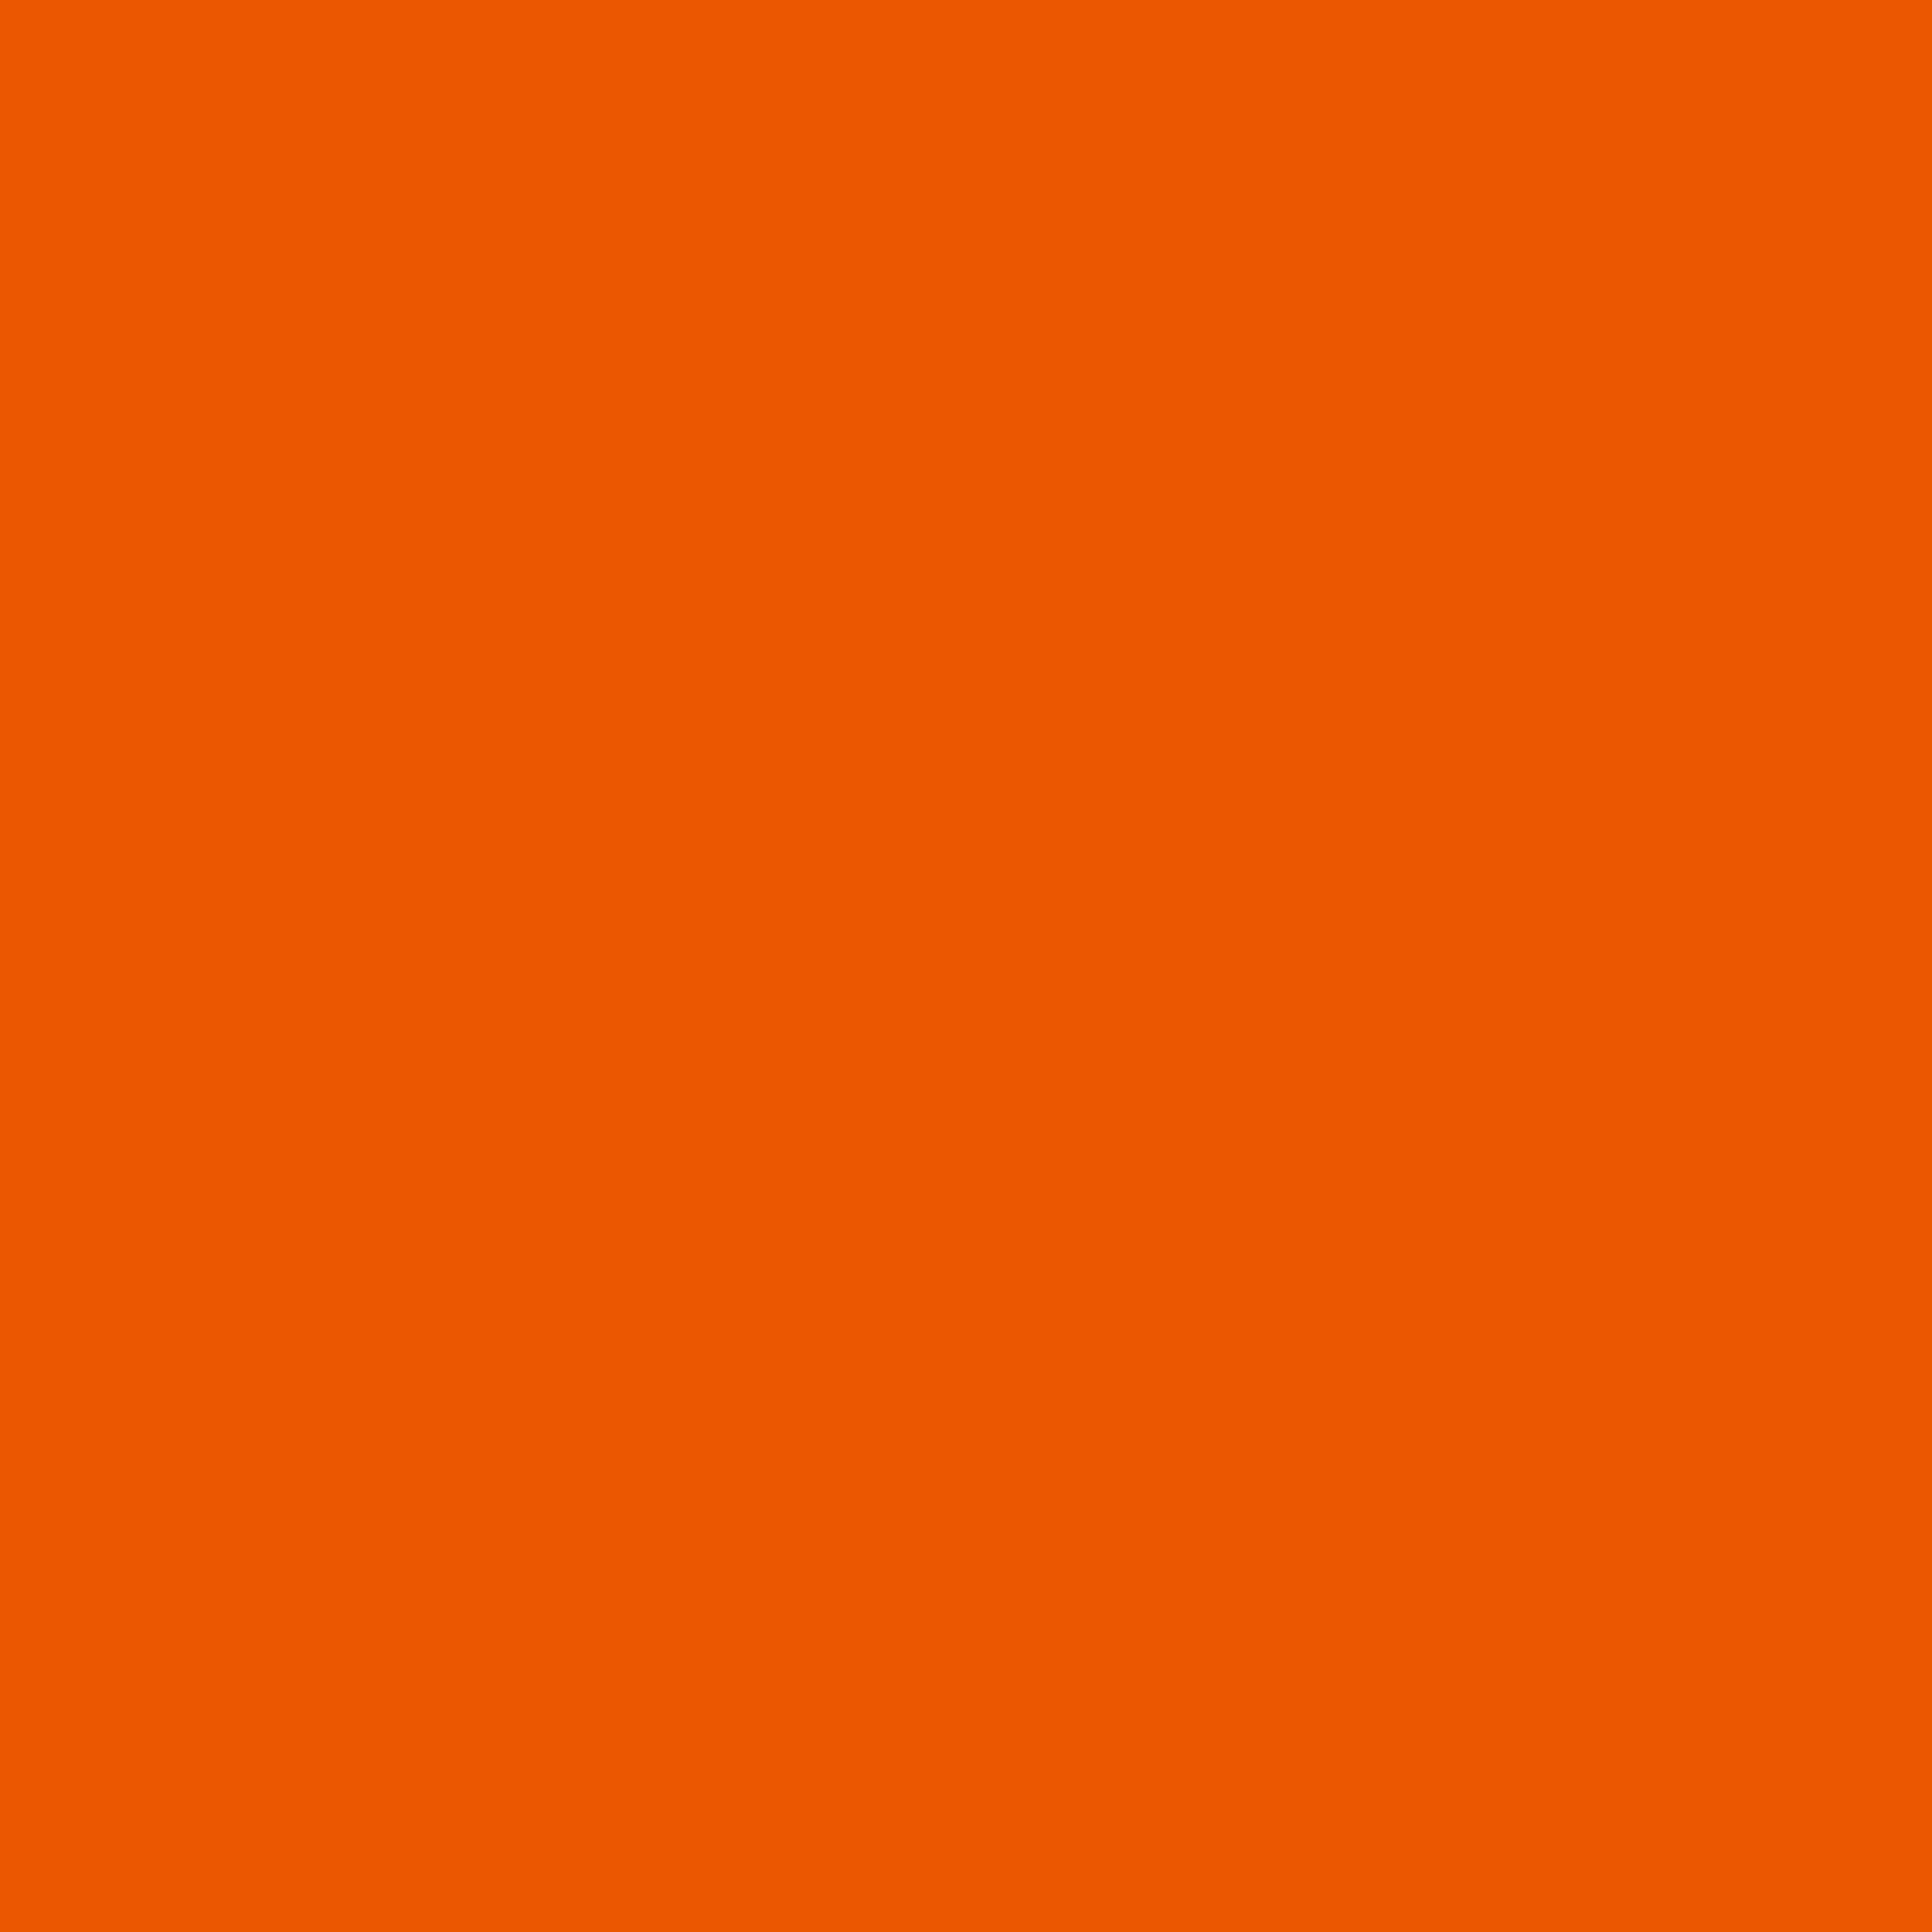 2048x2048 Persimmon Solid Color Background